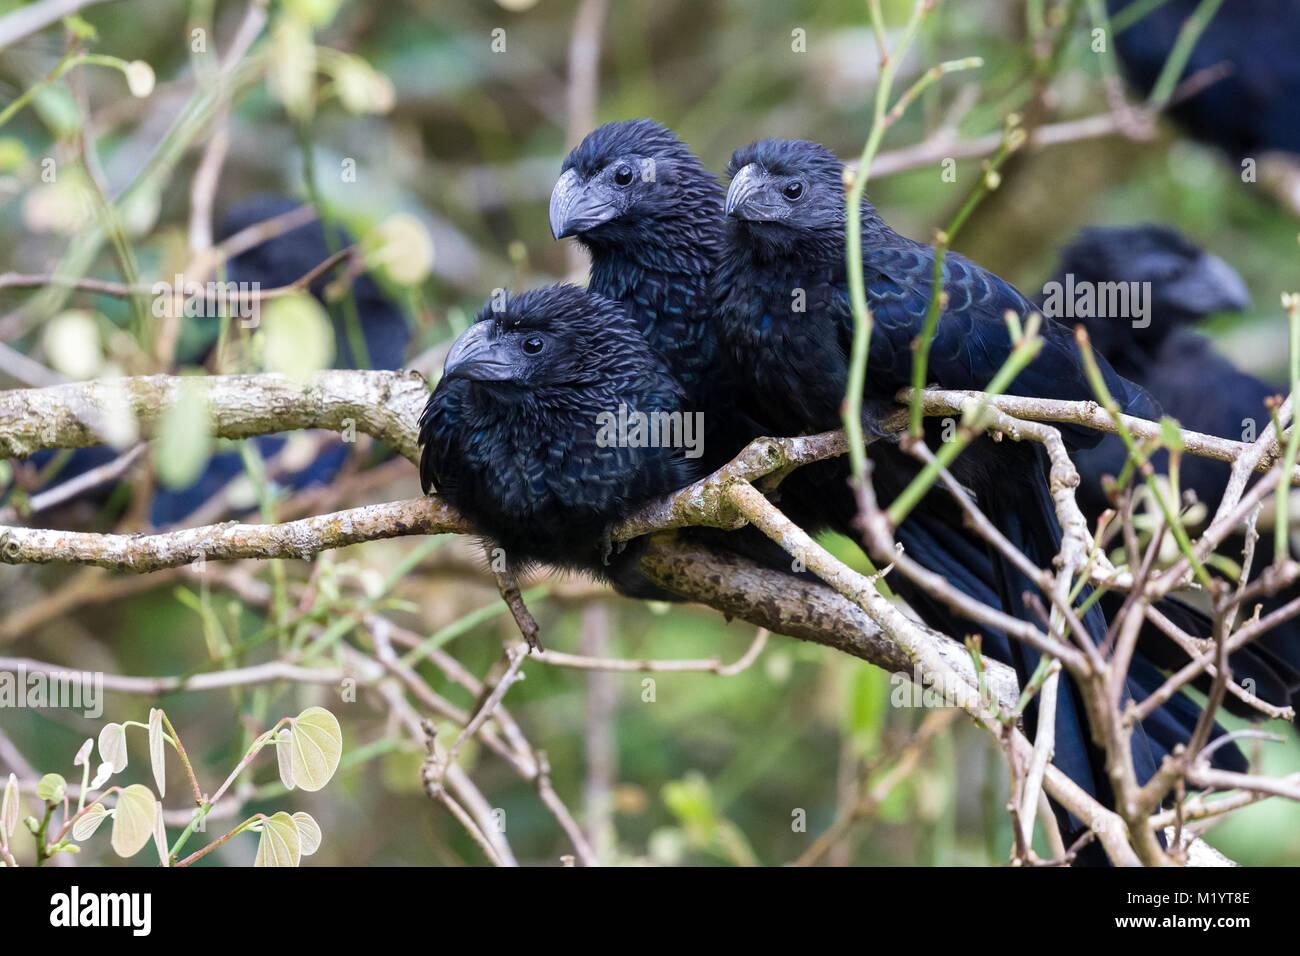 close up of a group of groove billed anis perched on a small branch in the rainforest of Costa Rica - Stock Image